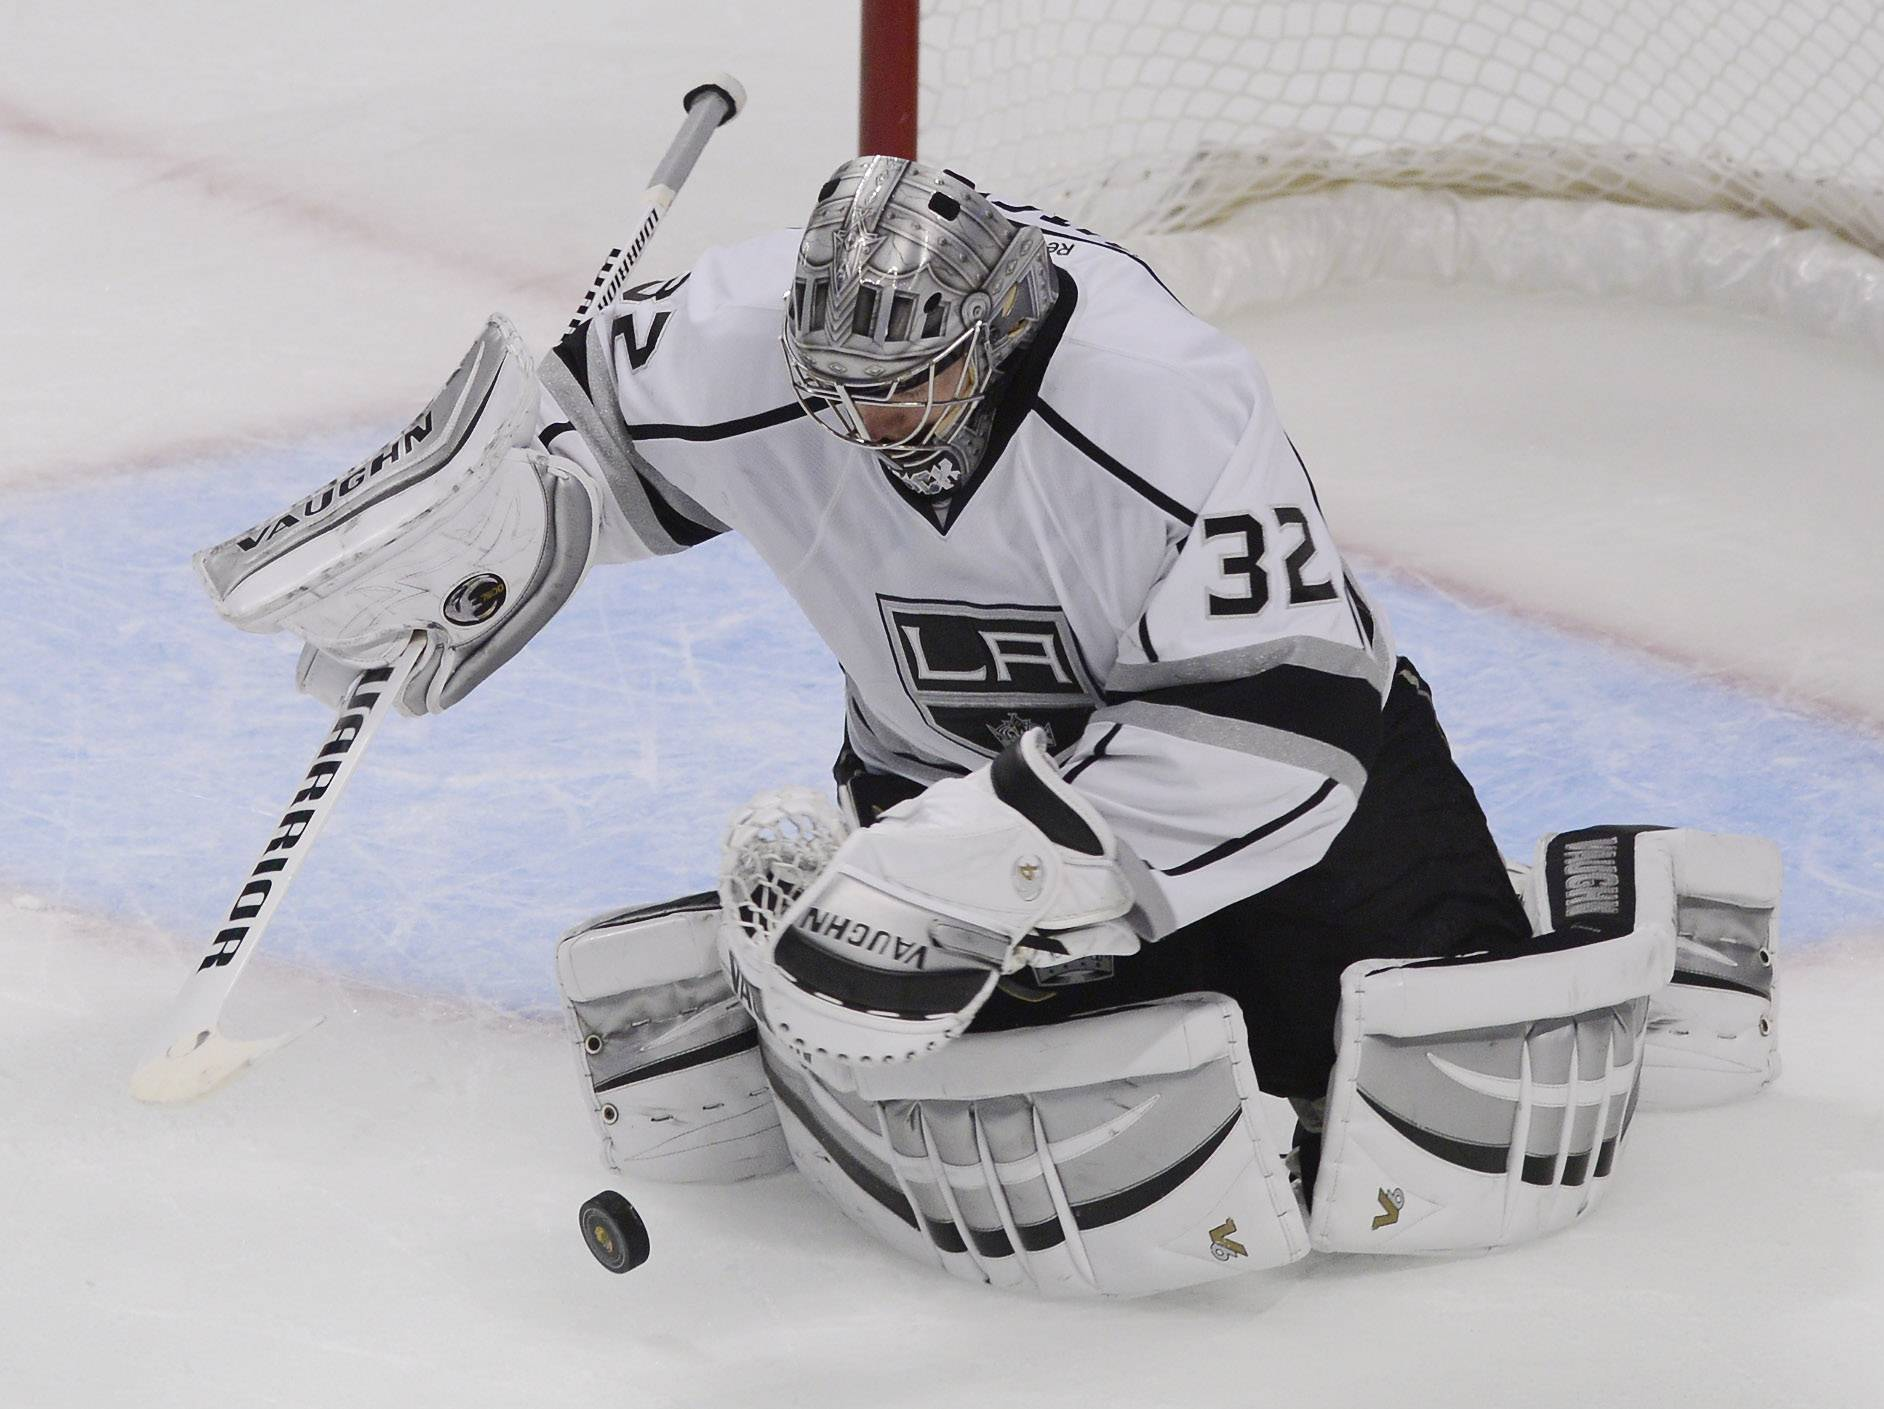 Los Angeles Kings goalie Jonathan Quick makes a save during Sunday's game against the Blackhawks at the United Center in Chicago.